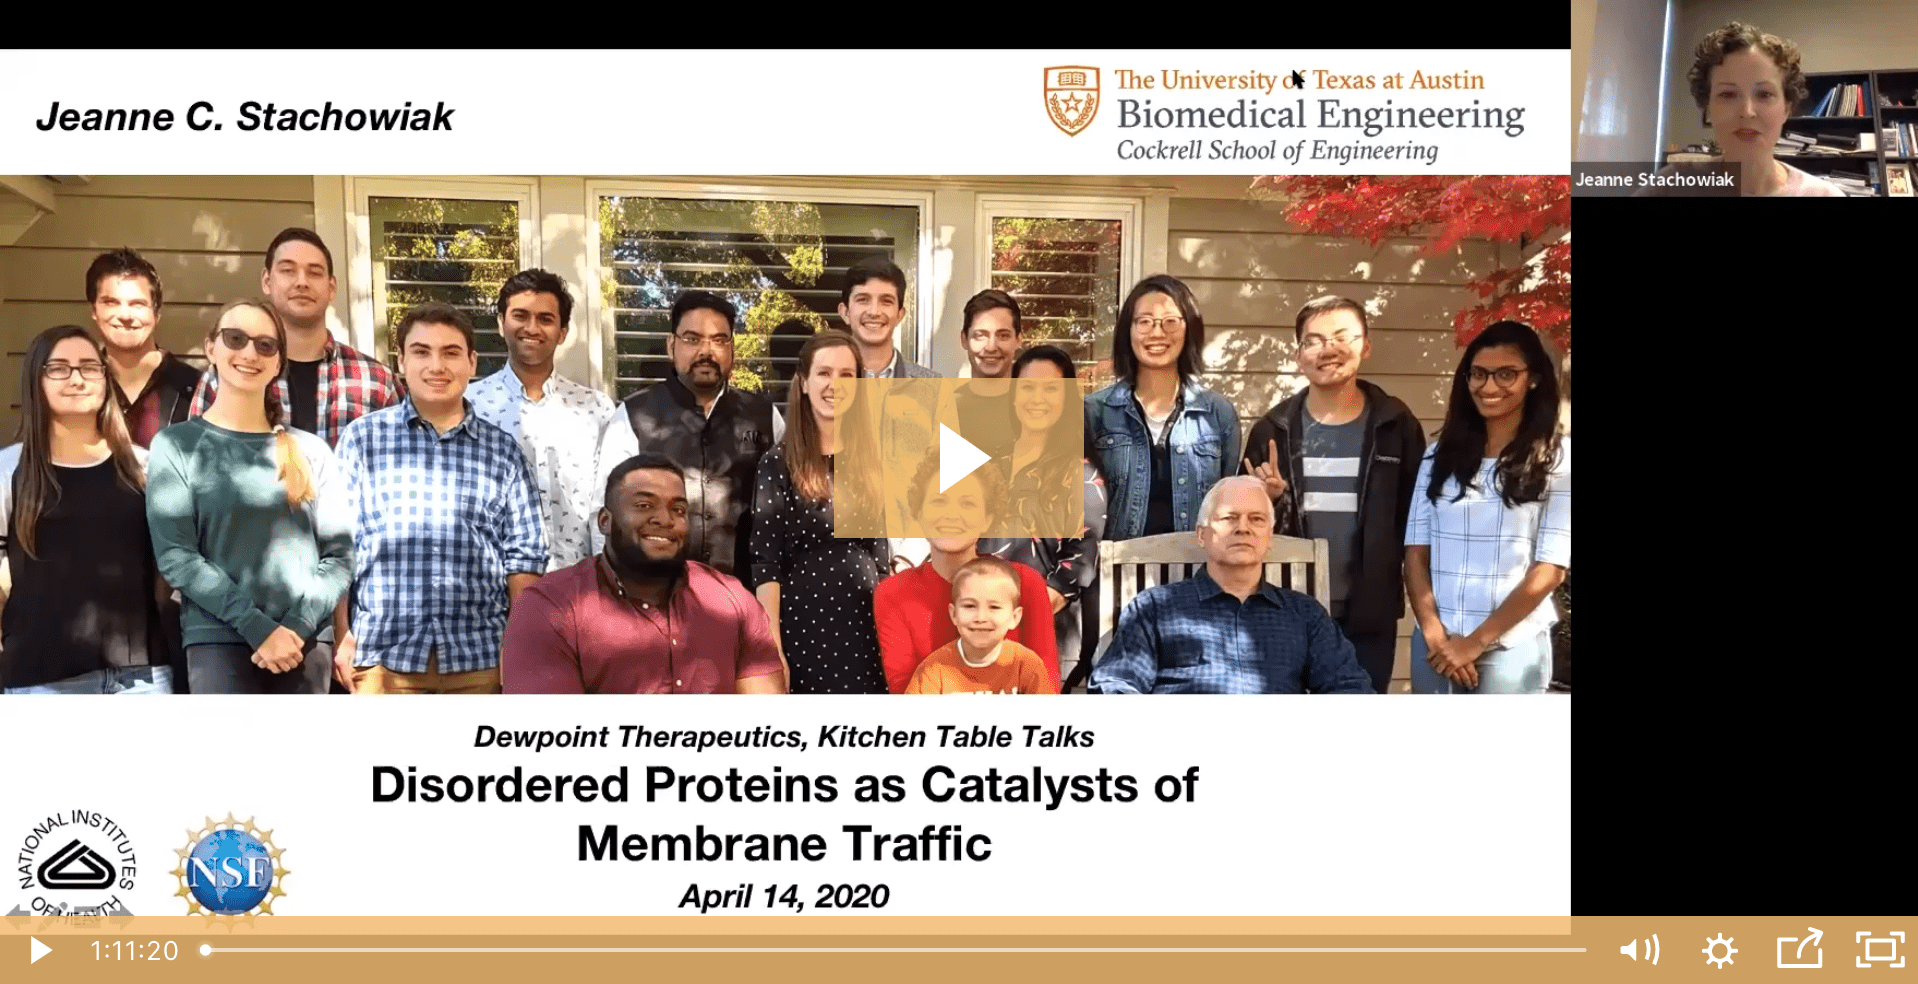 Jeanne Stachowiak on Disordered Proteins and Membrane Traffic